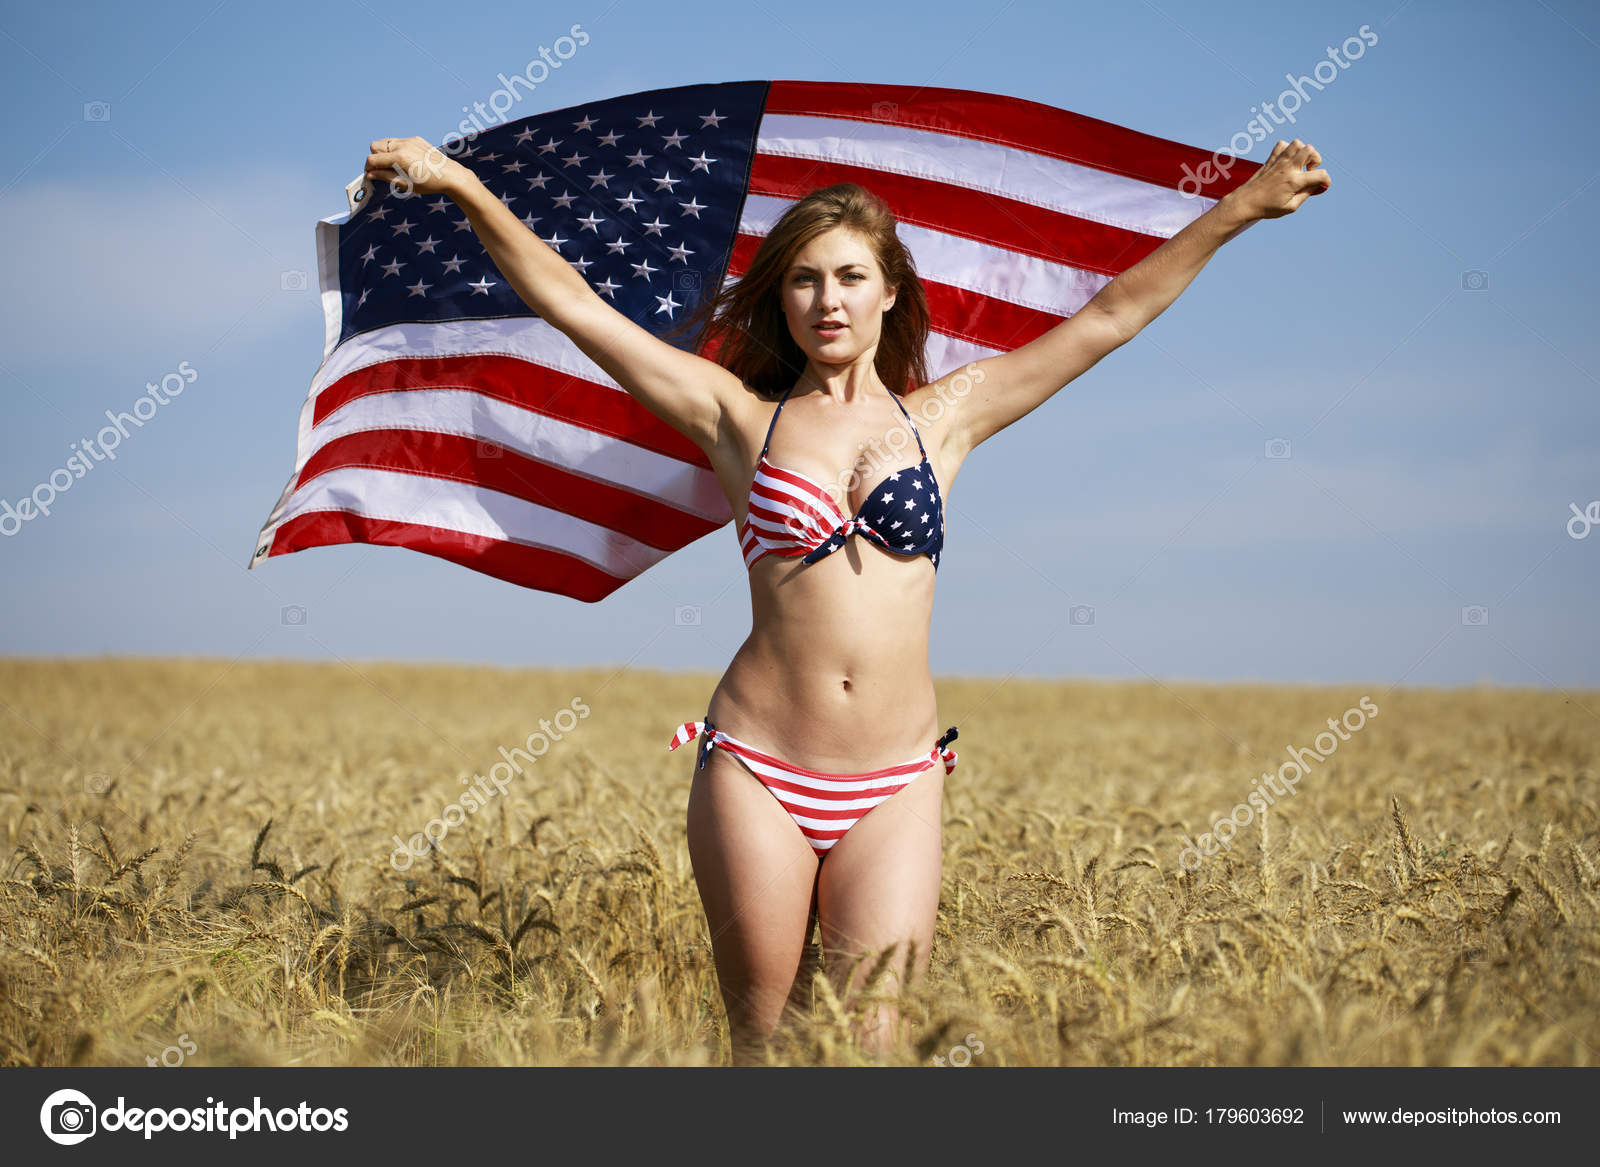 83dcea71953f4 Sexy woman in sexy American flag bikini in a wheat field — Stock Photo